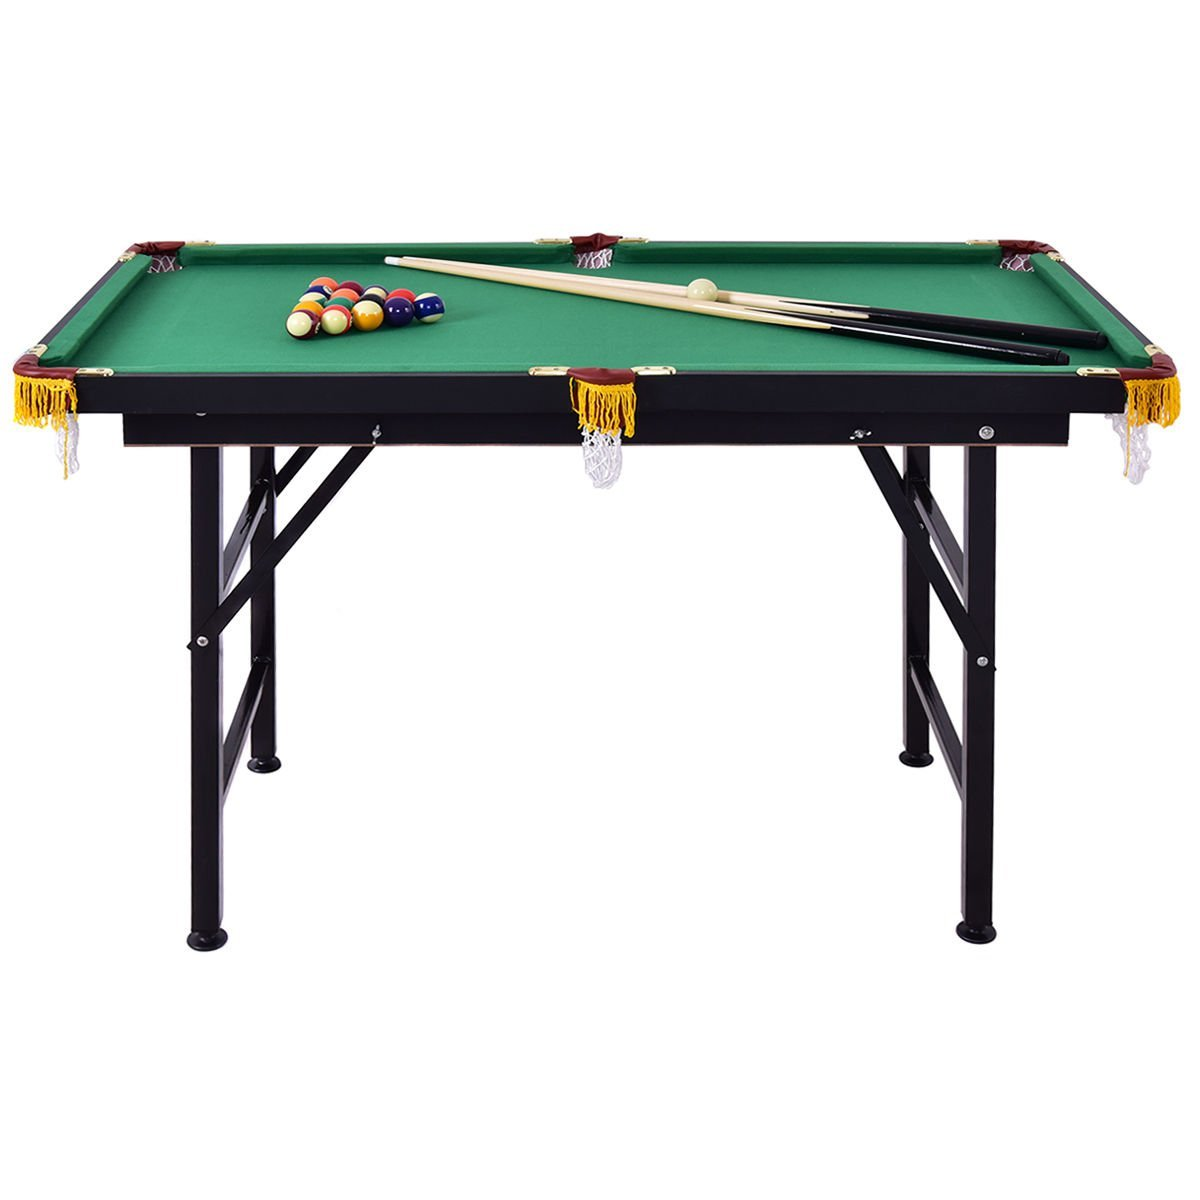 Mini Foldable Pool Table Portable Billiard Table With Cues Balls Best Children Boy Girls Kids Sports Game Toy by HZR